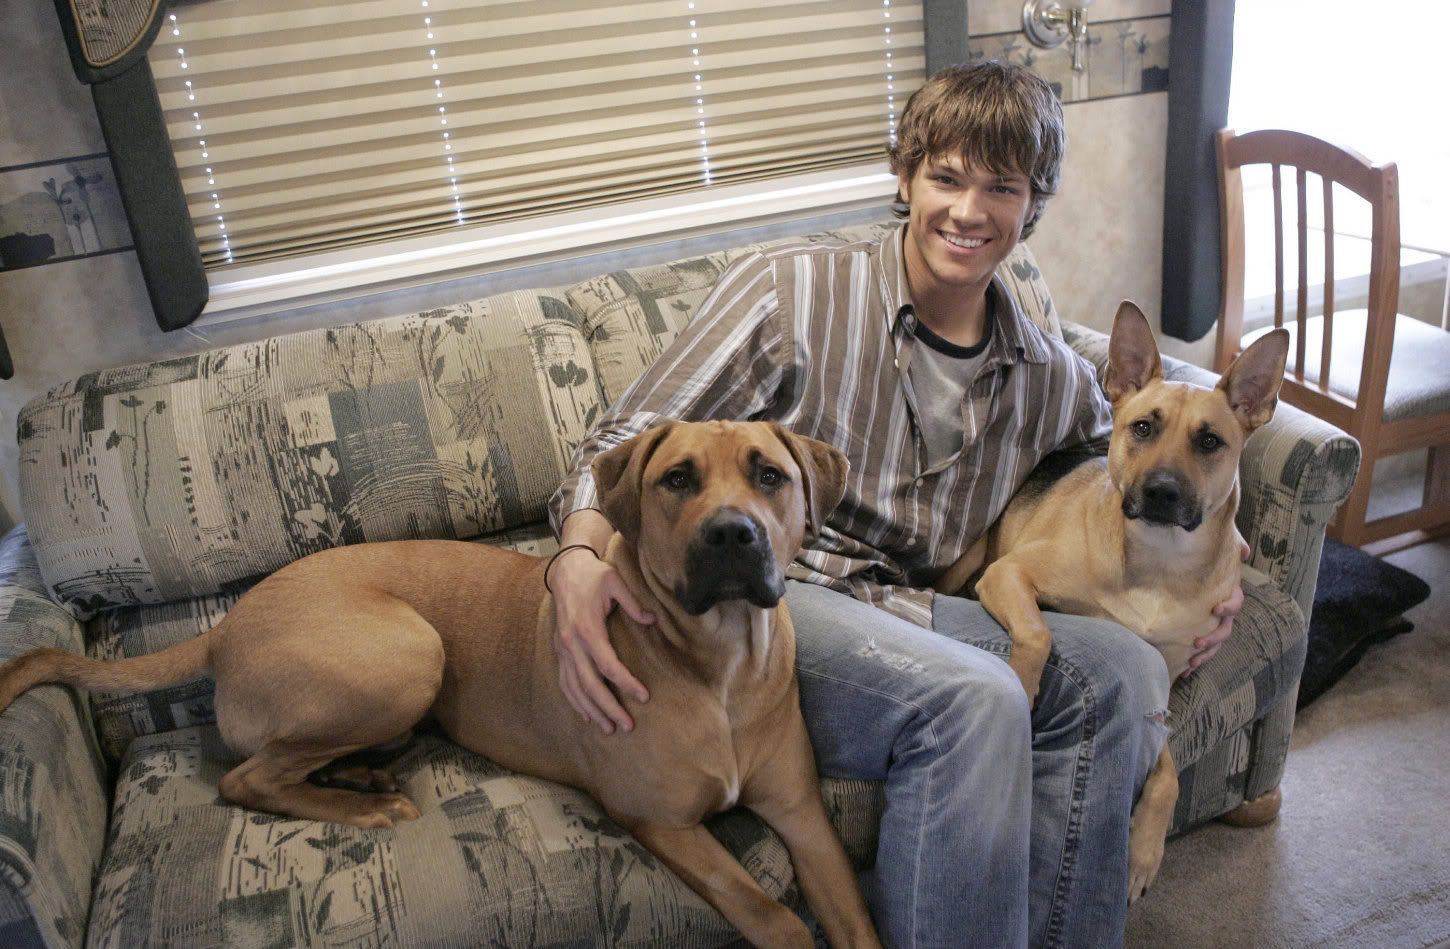 Jared Padelecki (Supernatural) with his two dogs on set